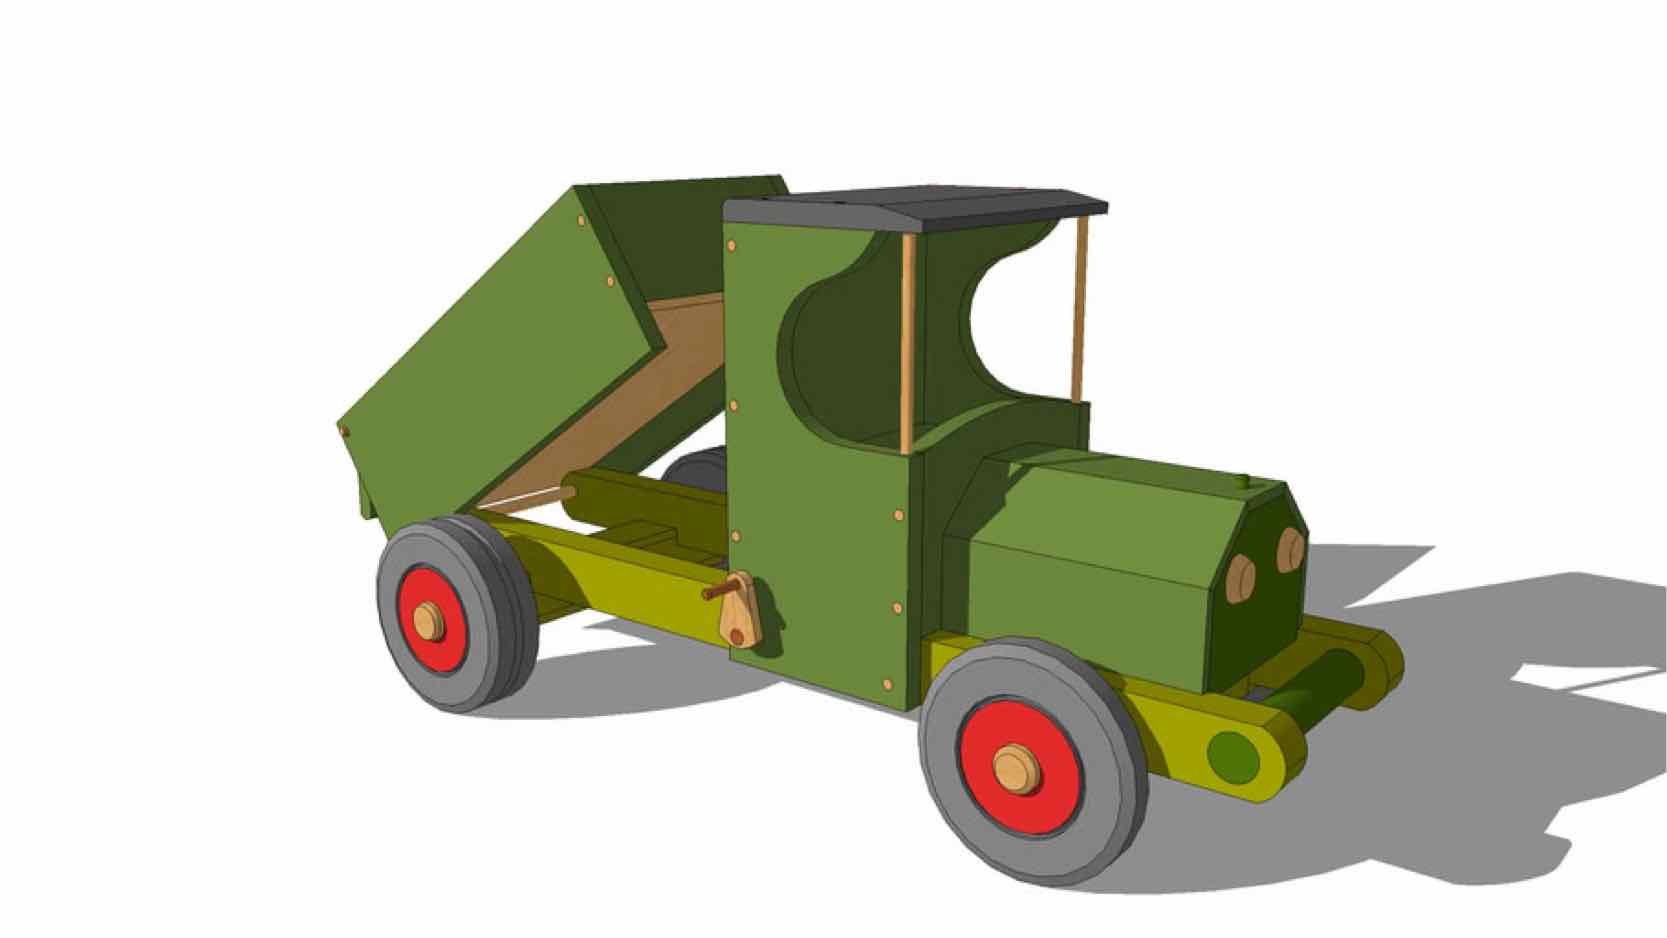 trucks,dump trucks,sketchup,Google 3D,3-D warehouse,childs,childrens,kids,toys,furniture,drawings,free woodworking plans,projects,do it yourself,woodworkers